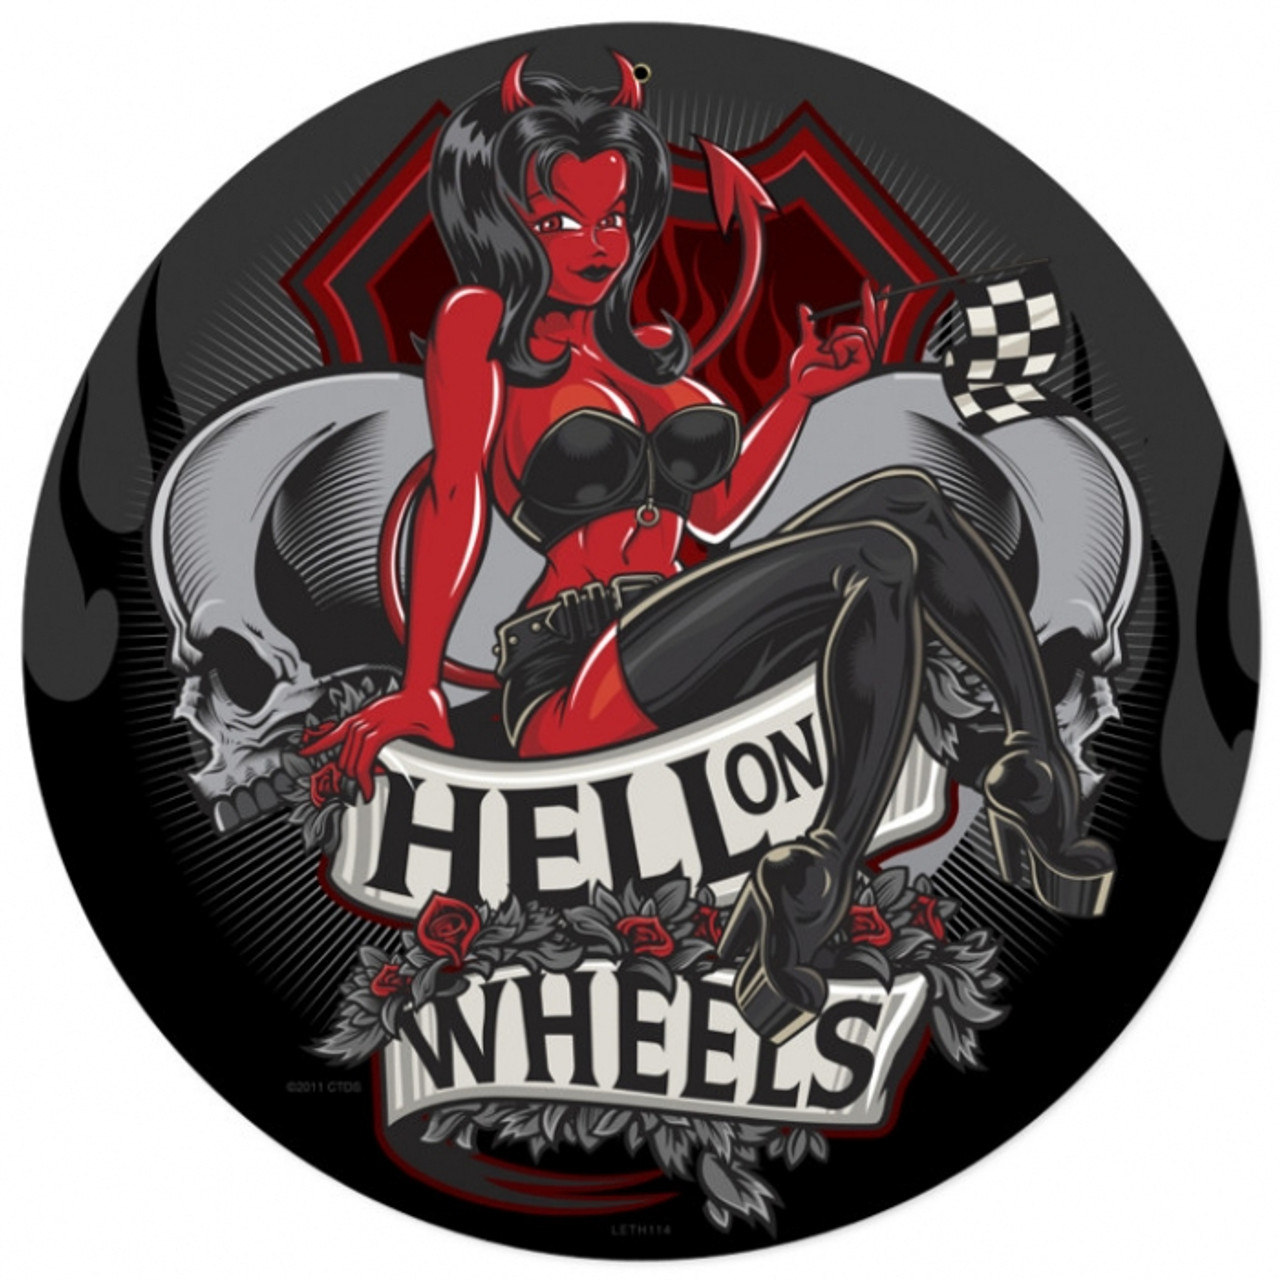 Retro Hell on Wheels Metal Sign 14 x 14 Inches